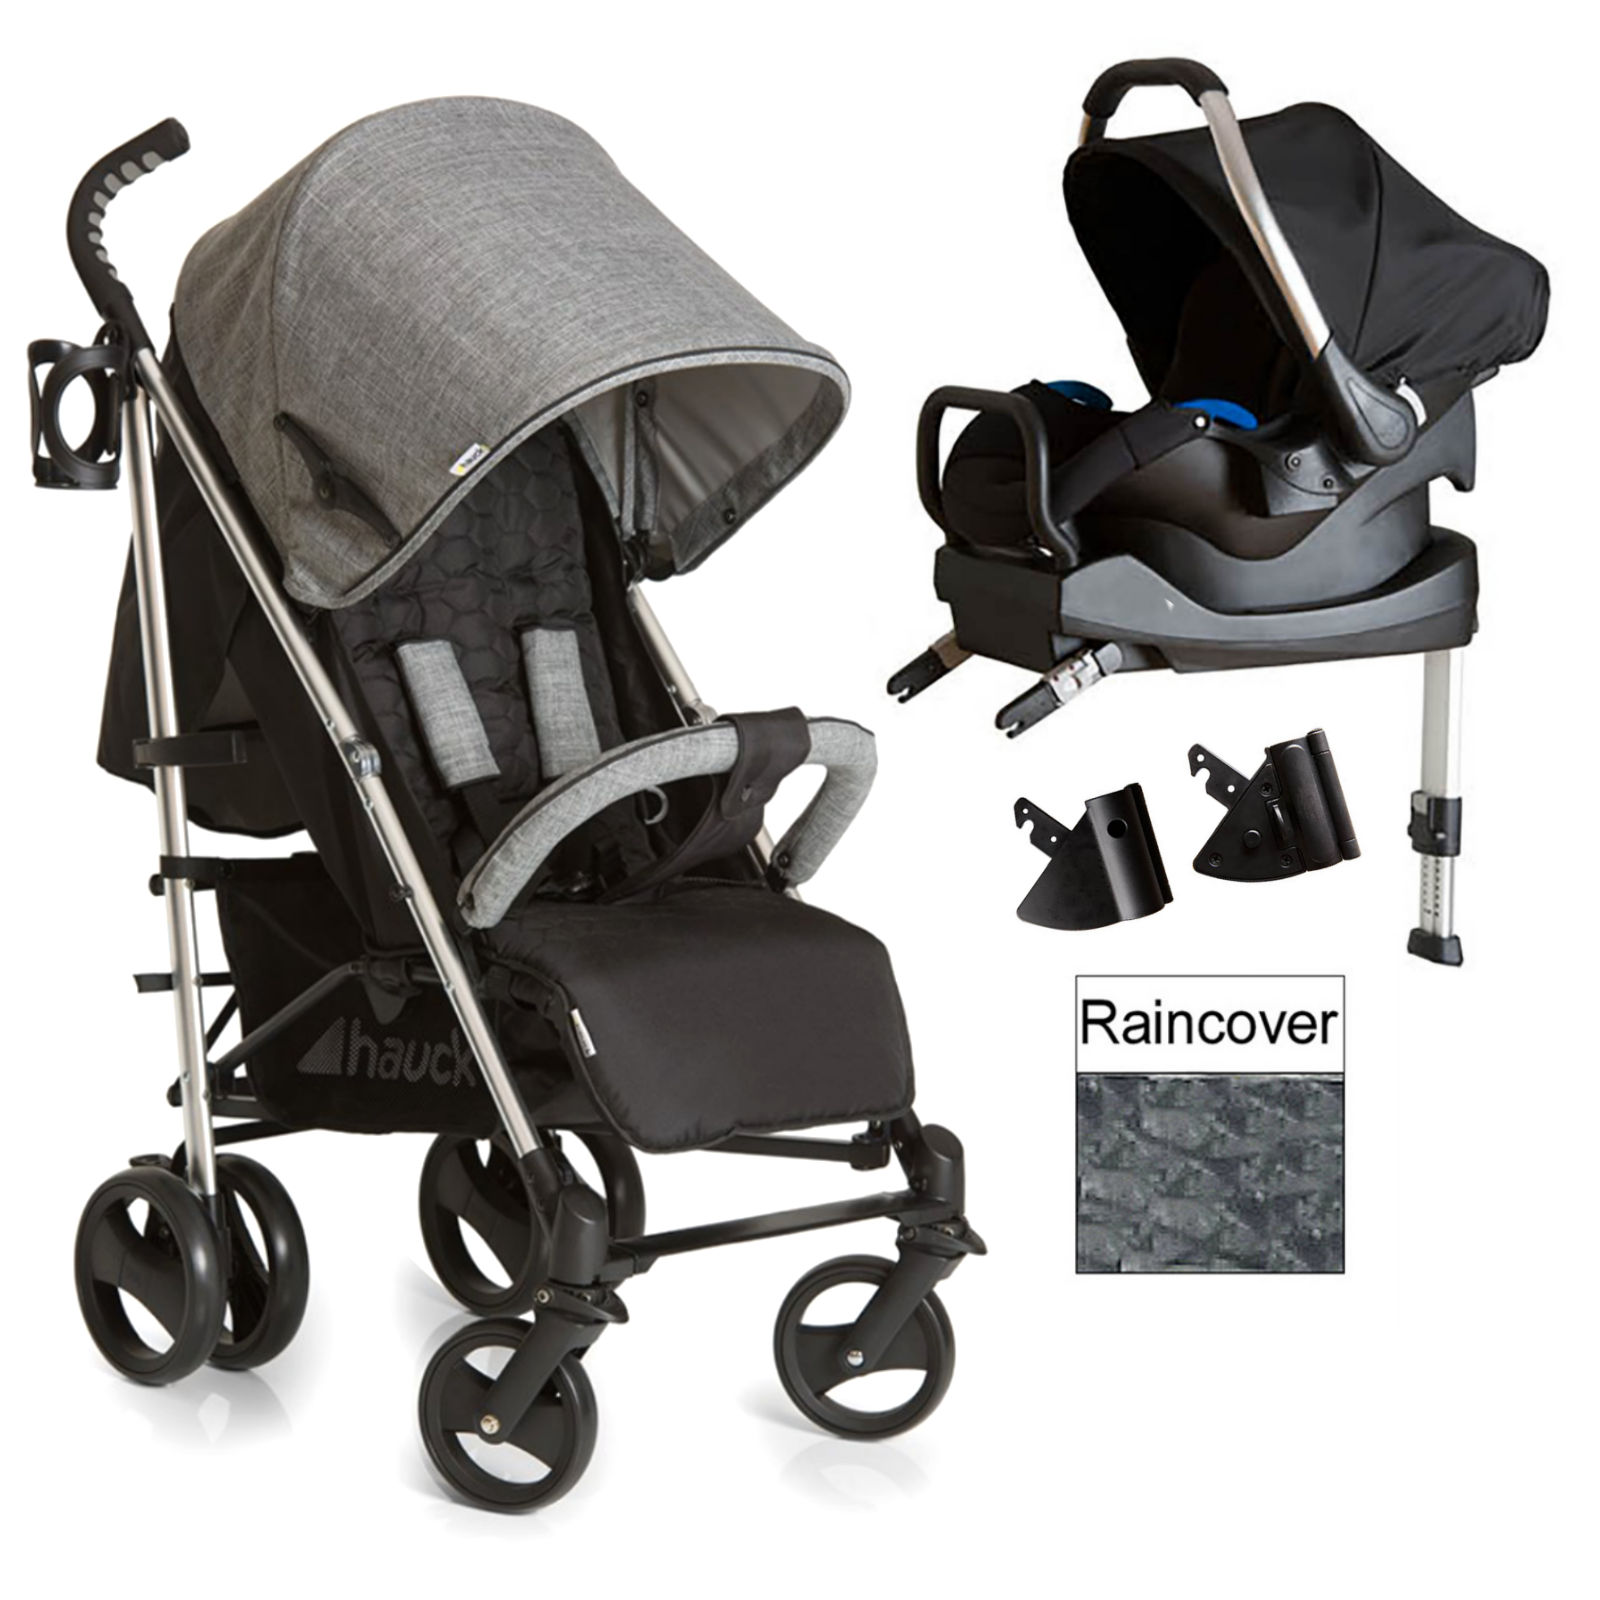 hauck vegas travel system isofix base melange grey. Black Bedroom Furniture Sets. Home Design Ideas